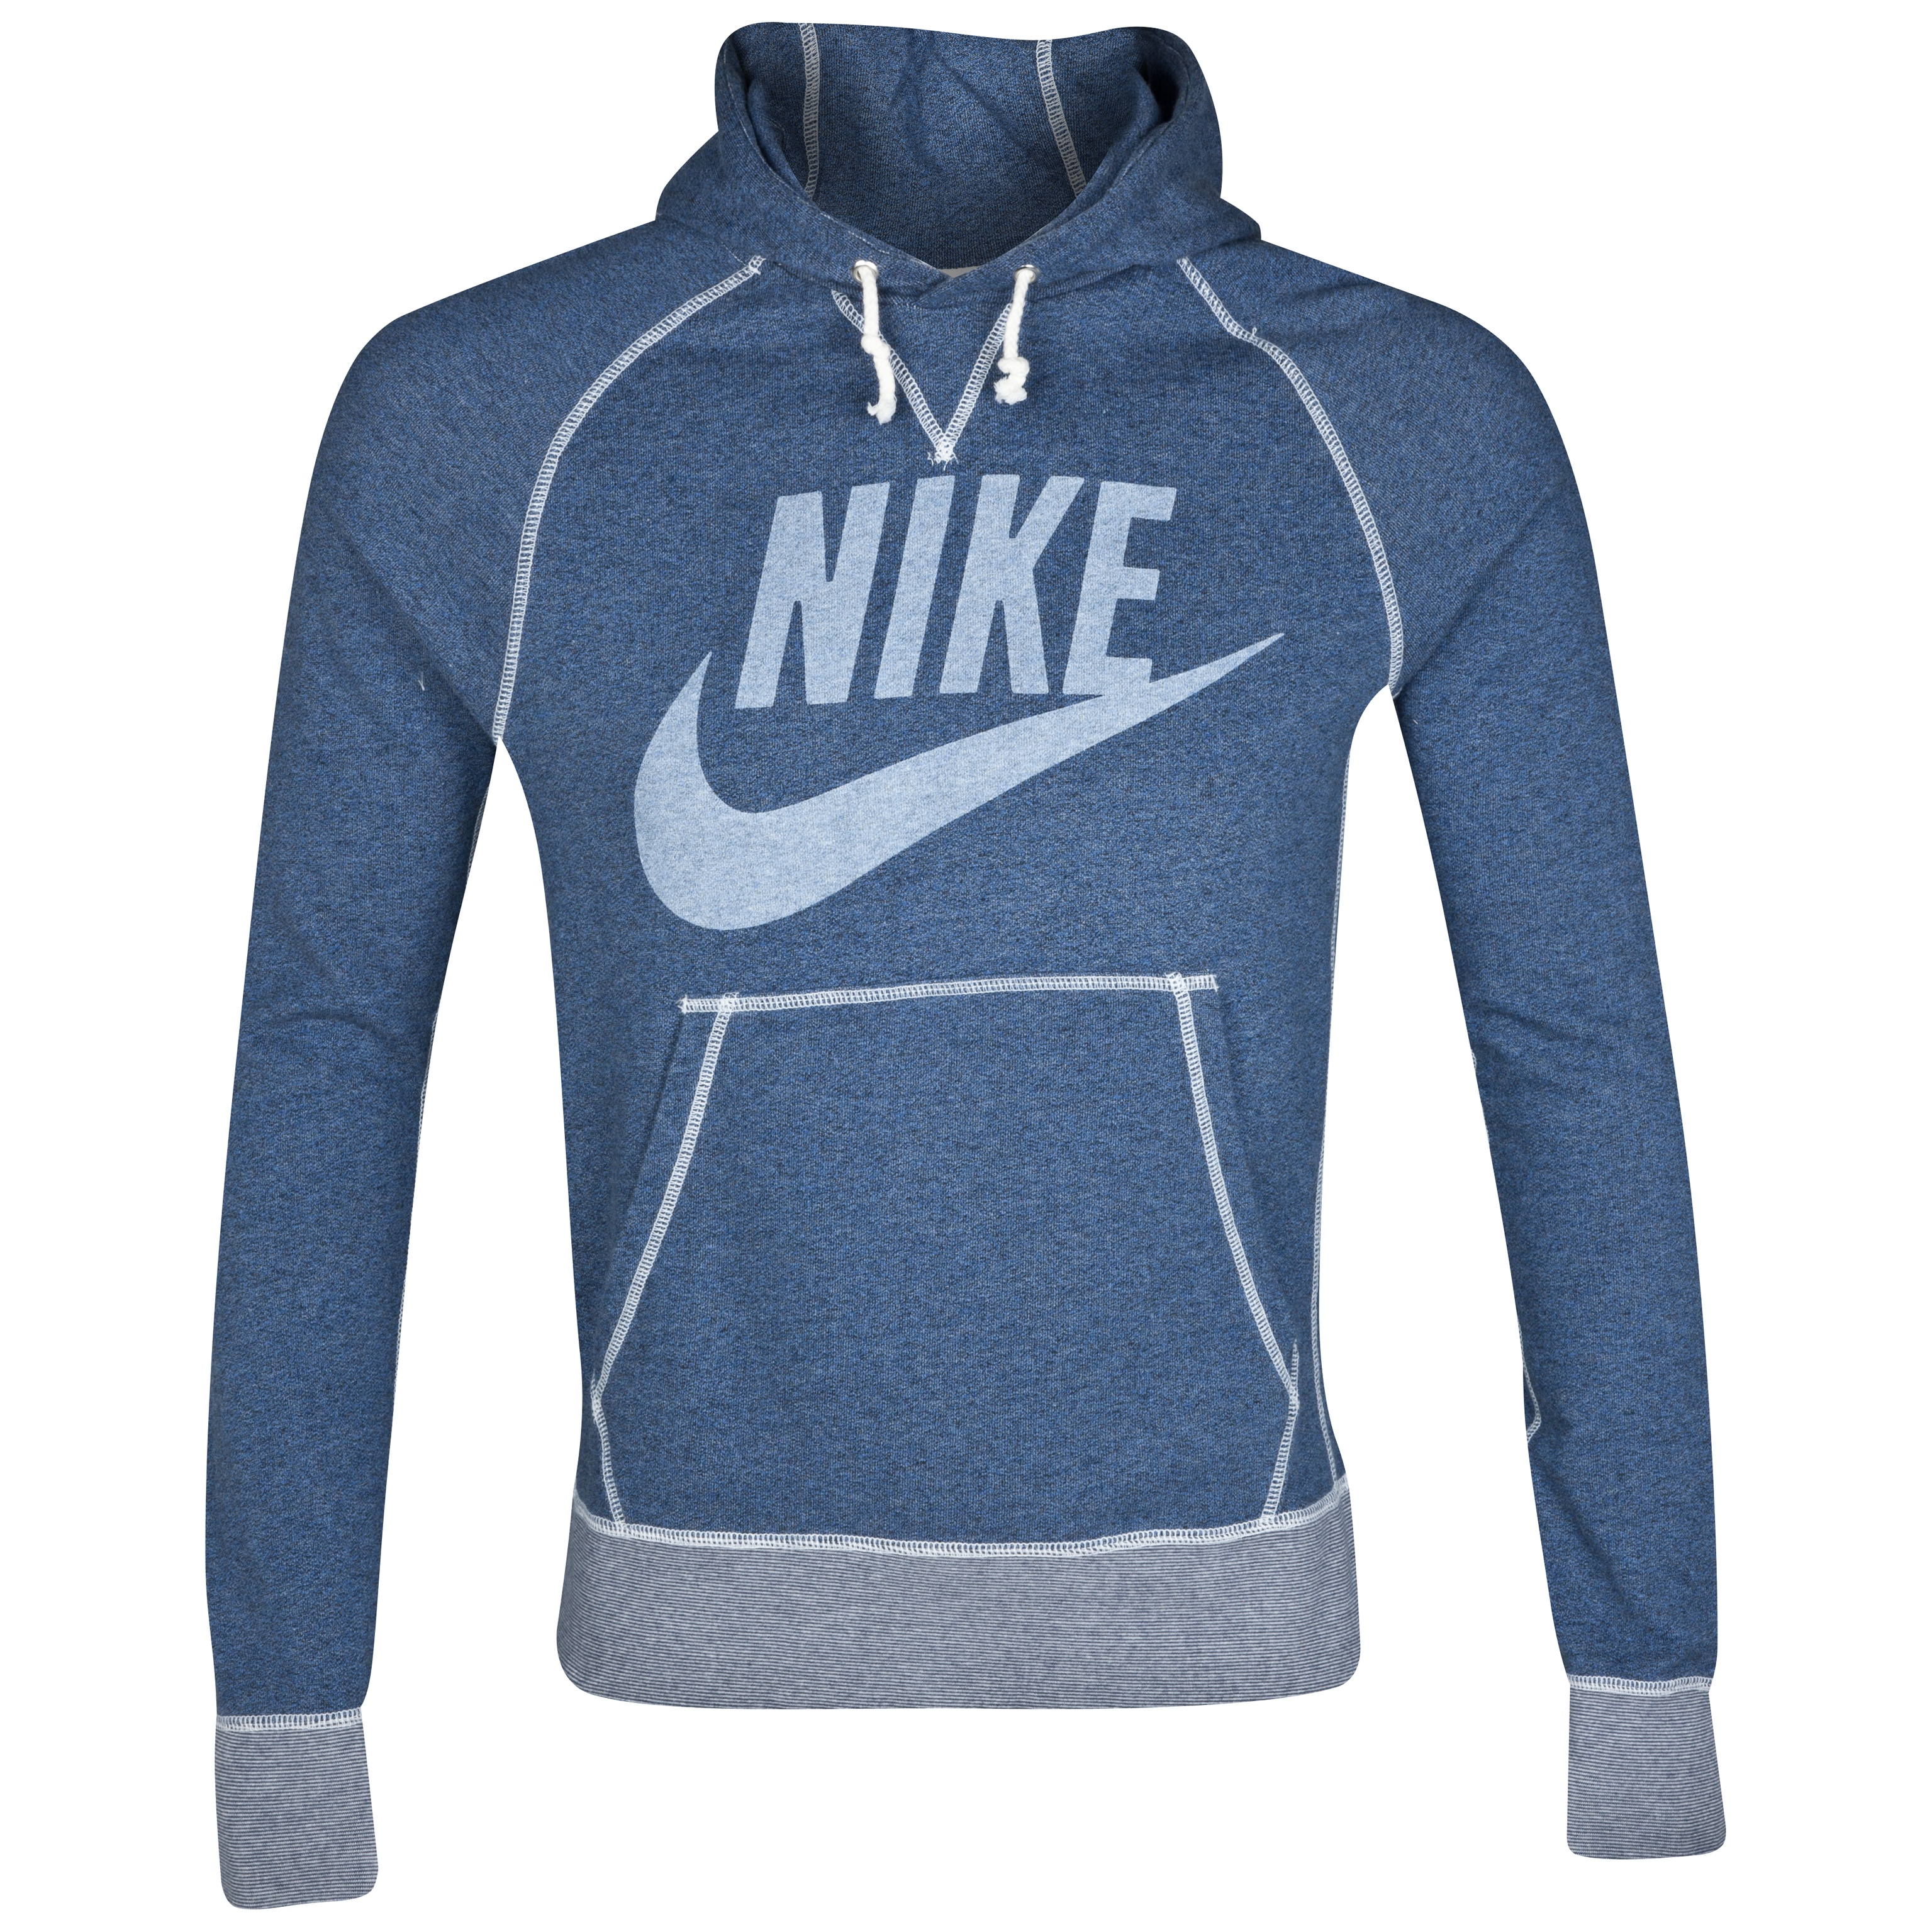 Nike Vintage Marl Logo Hoody - Monsoon Blue Heather/Sail